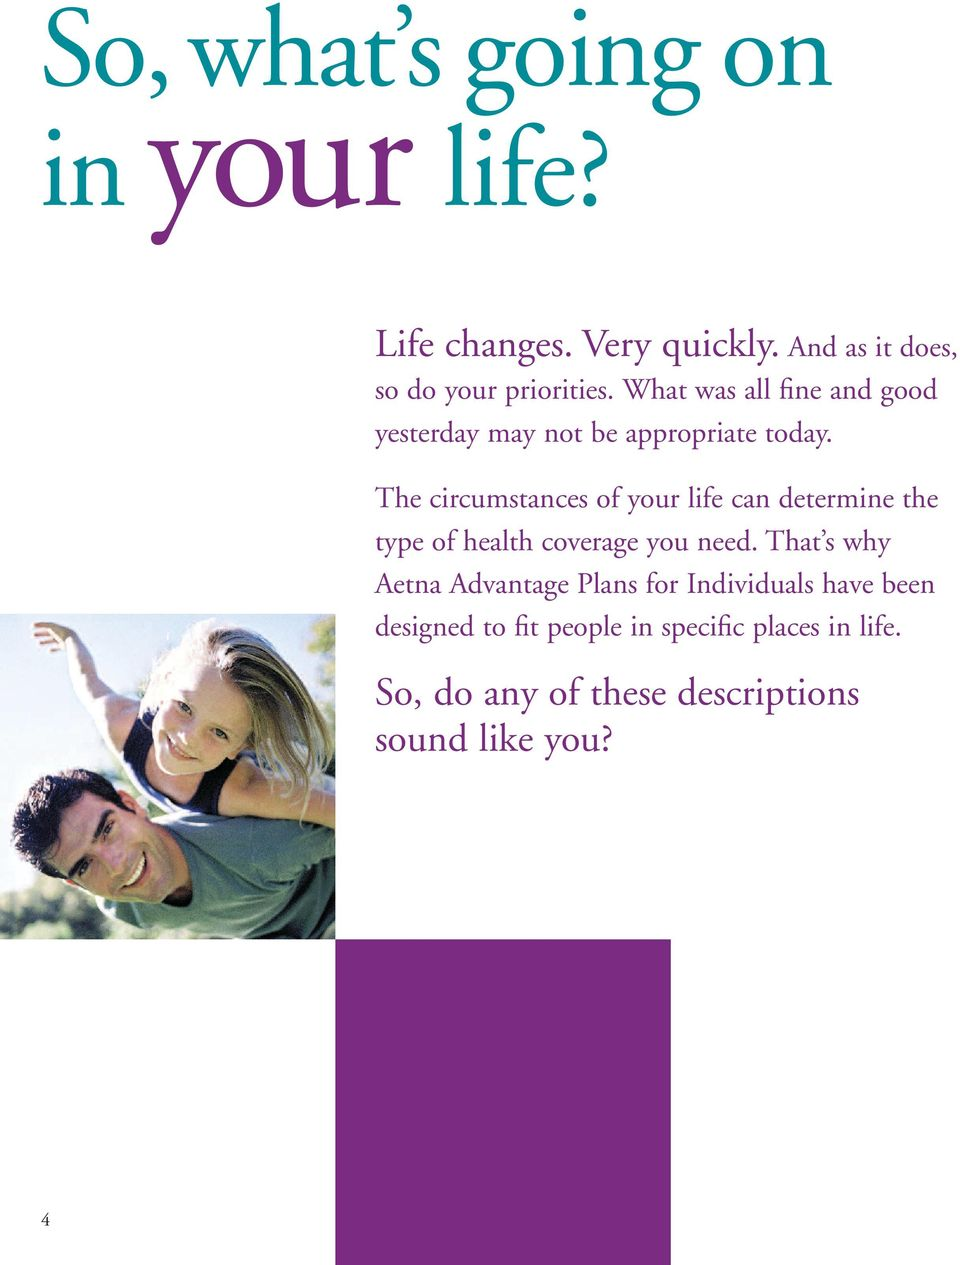 The circumstances of your life can determine the type of health coverage you need.